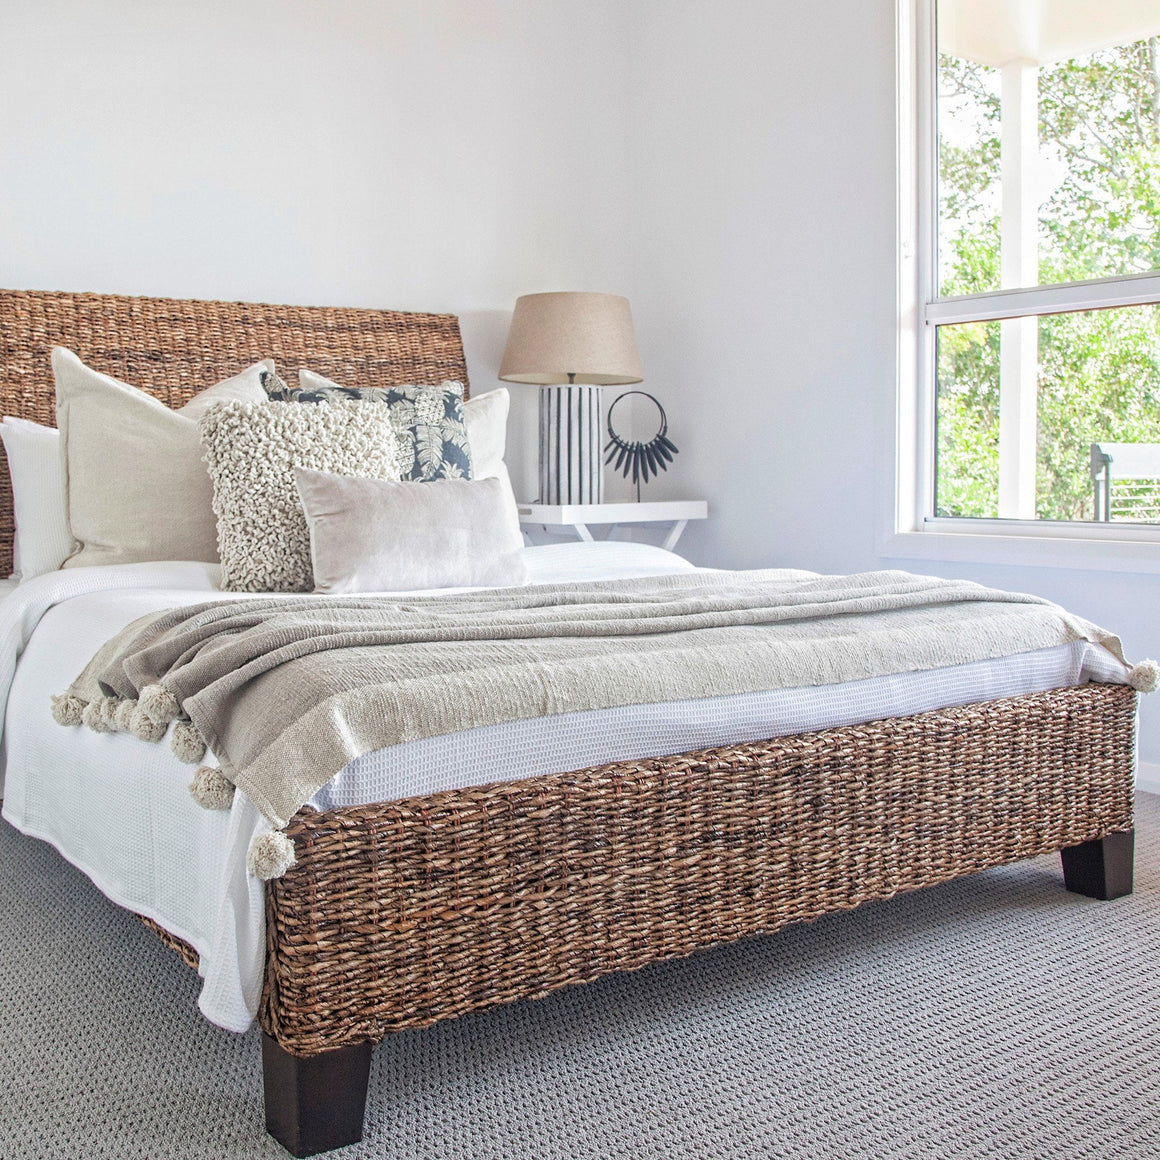 BANANA LEAF QUEEN BED W/ FRAME